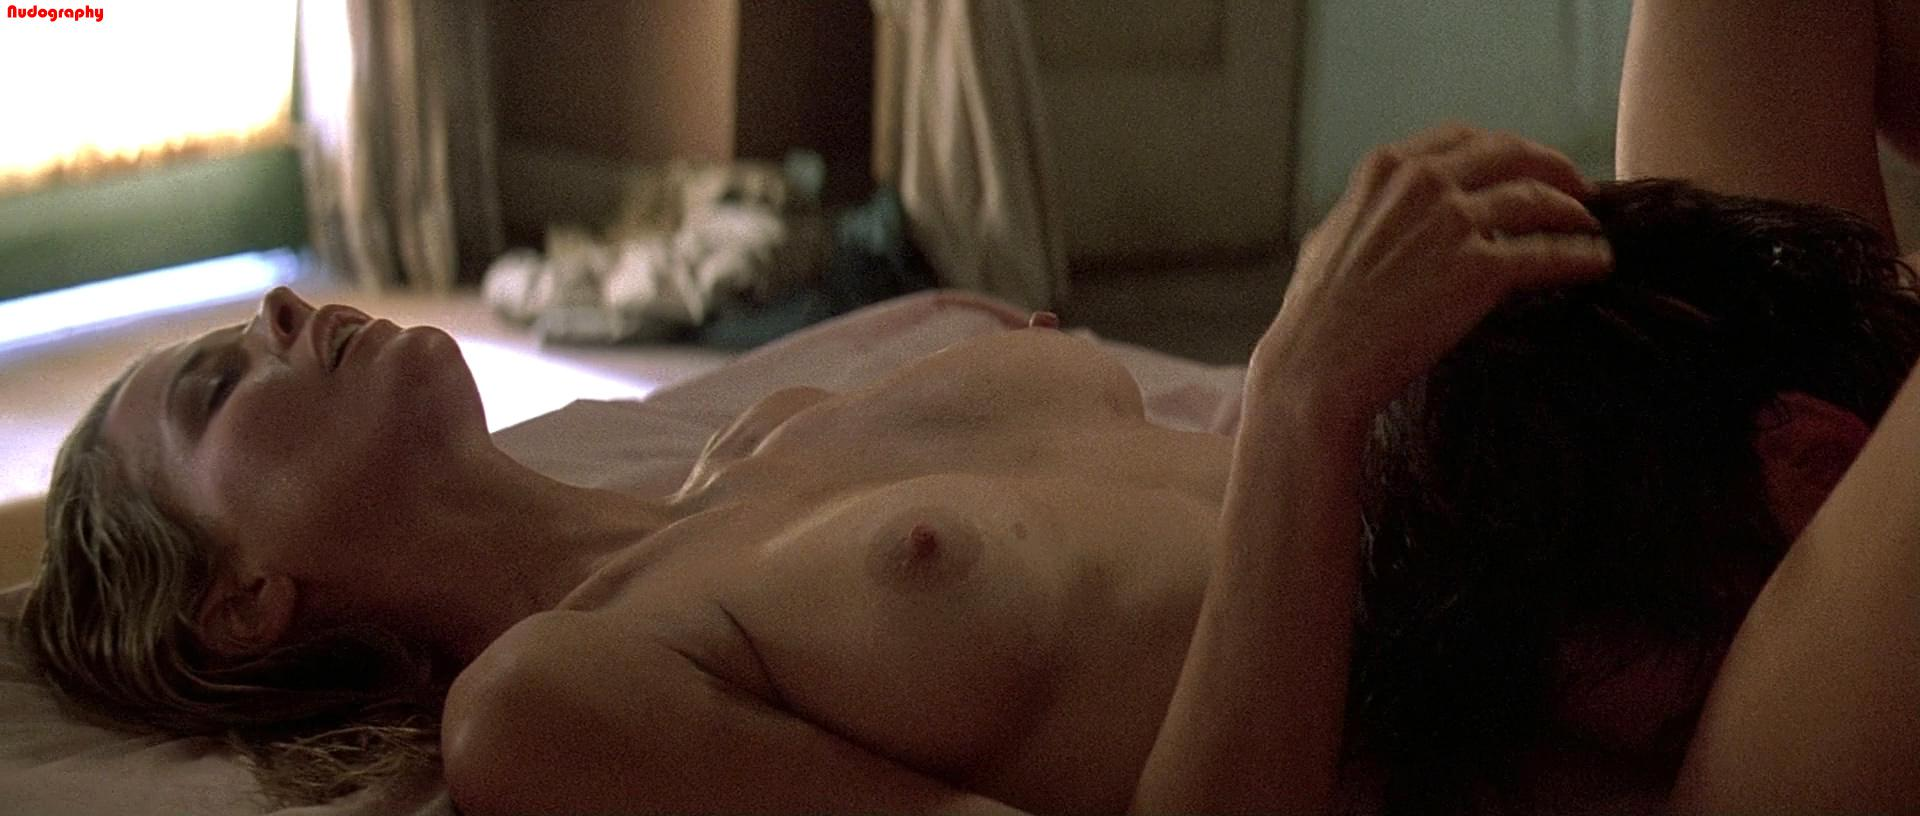 Kim Basinger Nude Photos and Videos - 2019 year